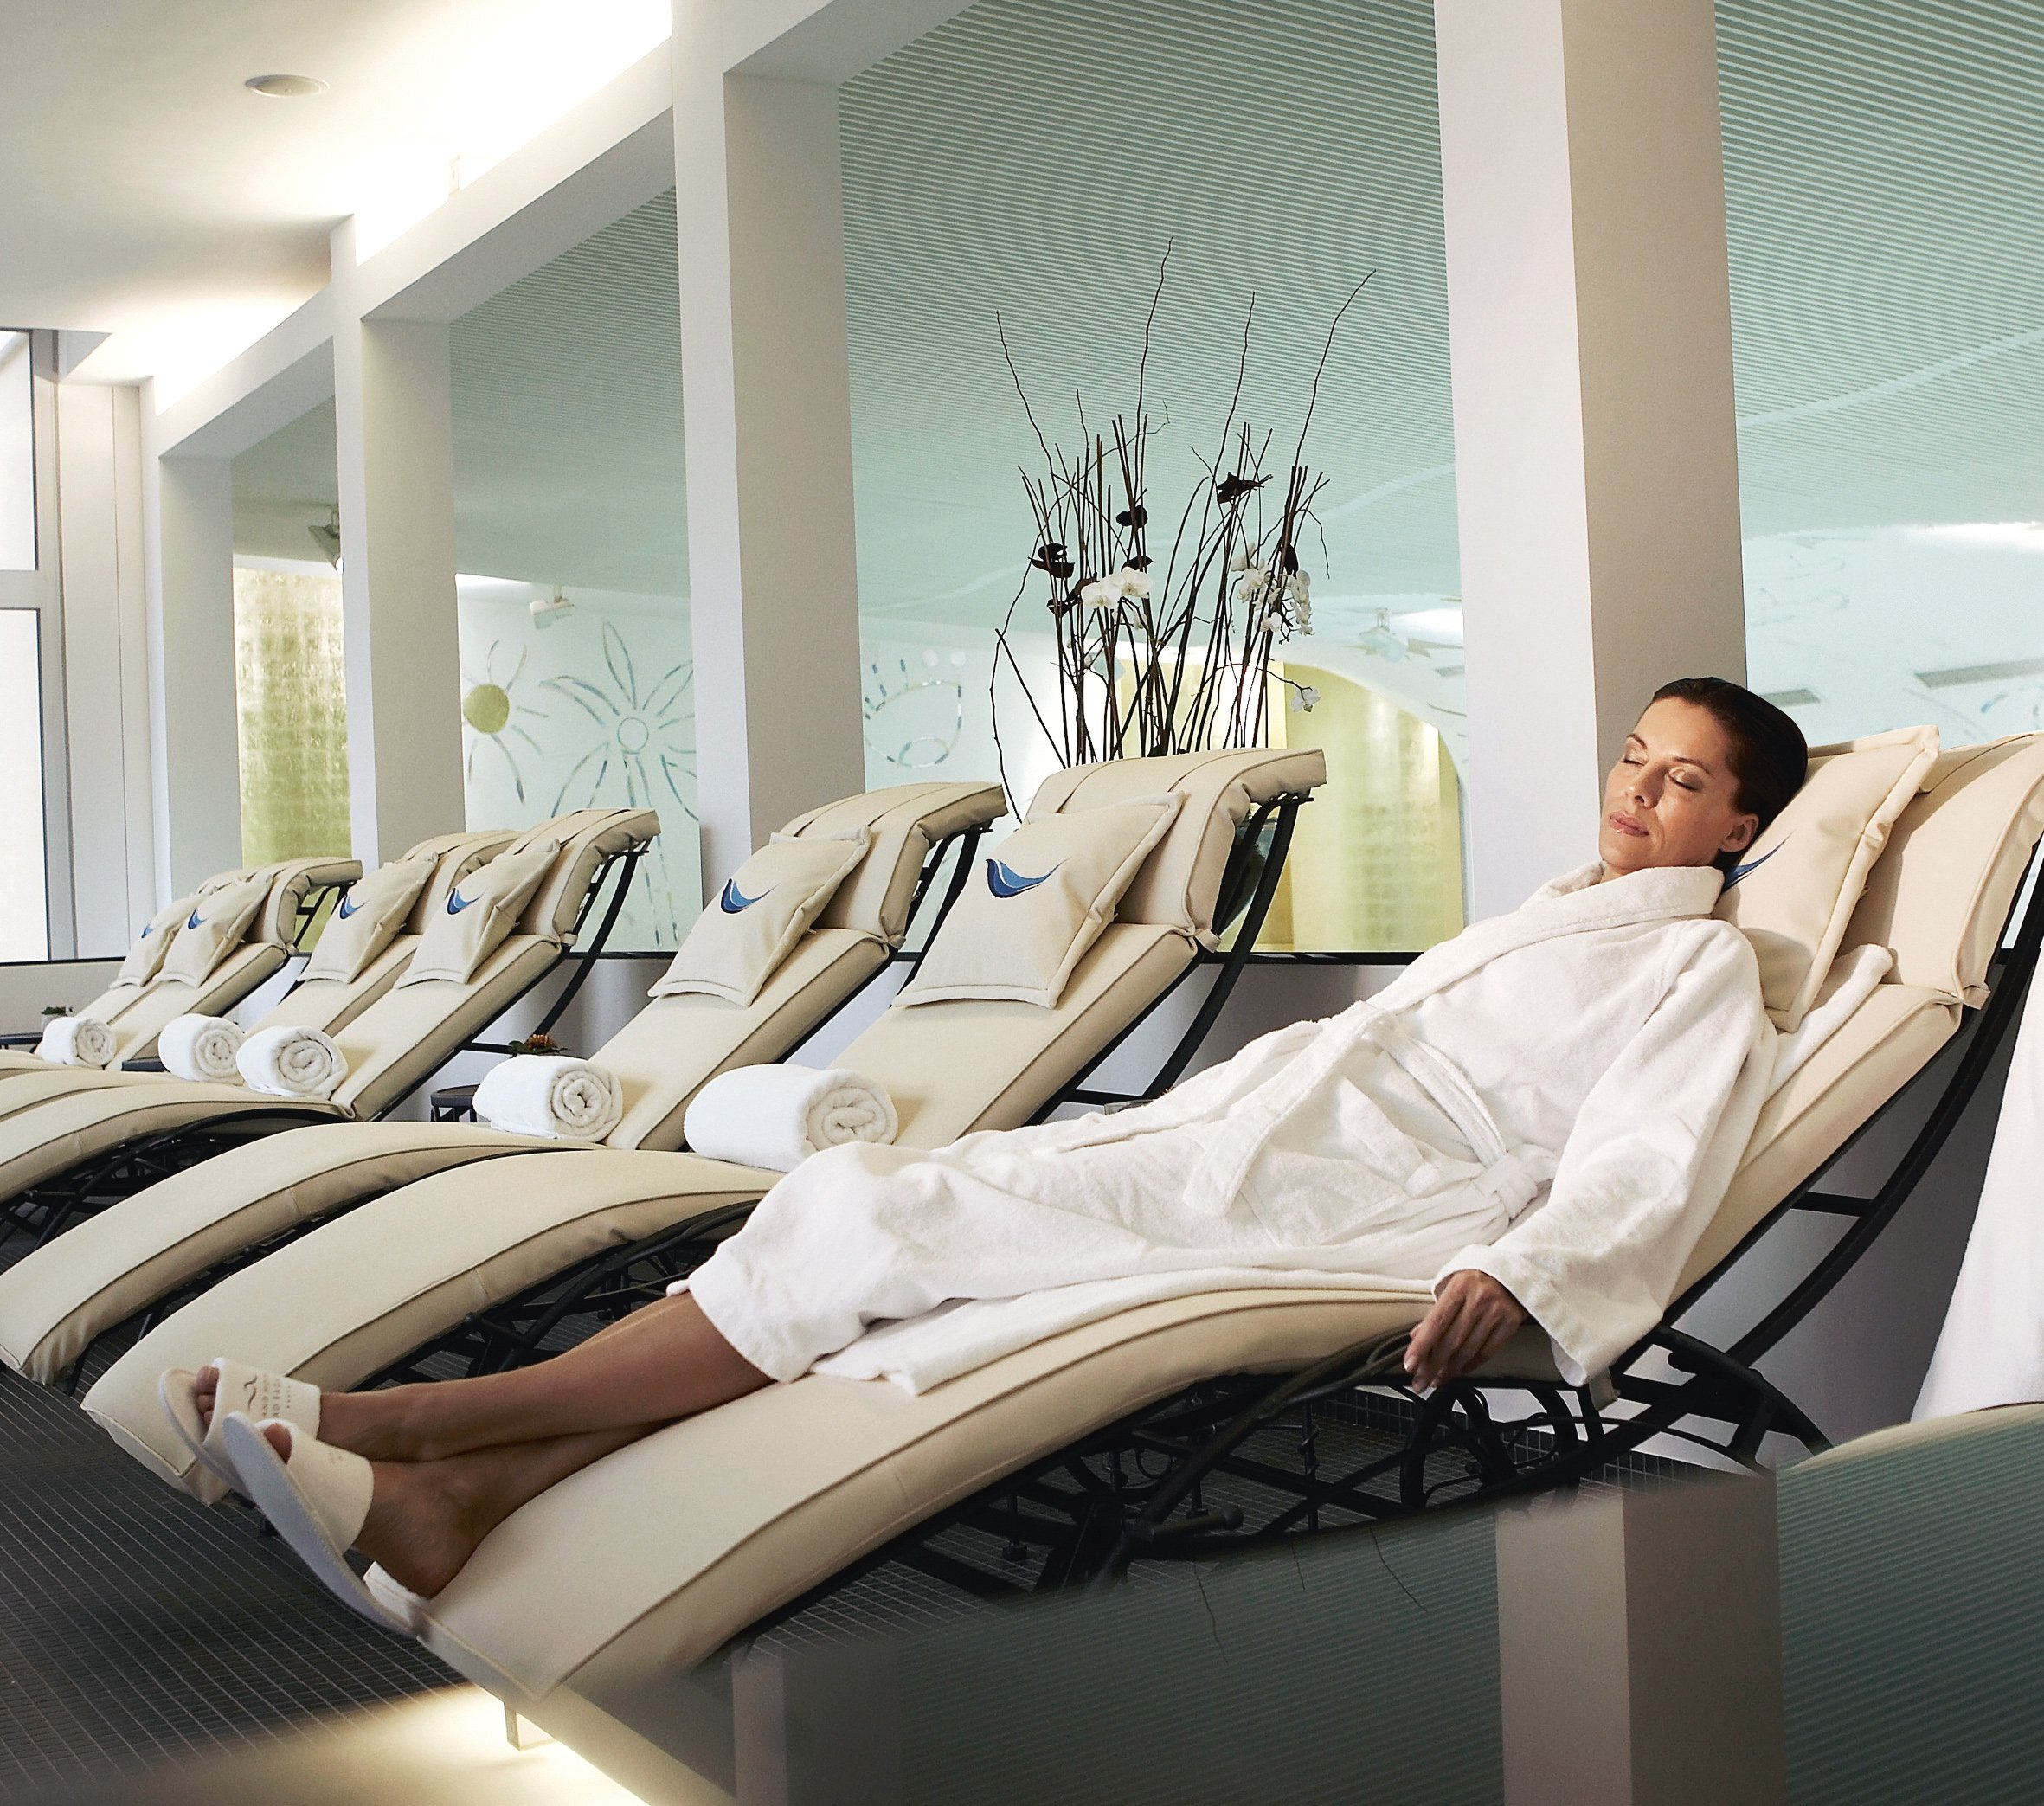 Grand Resort Bad Ragaz Treatment Offered